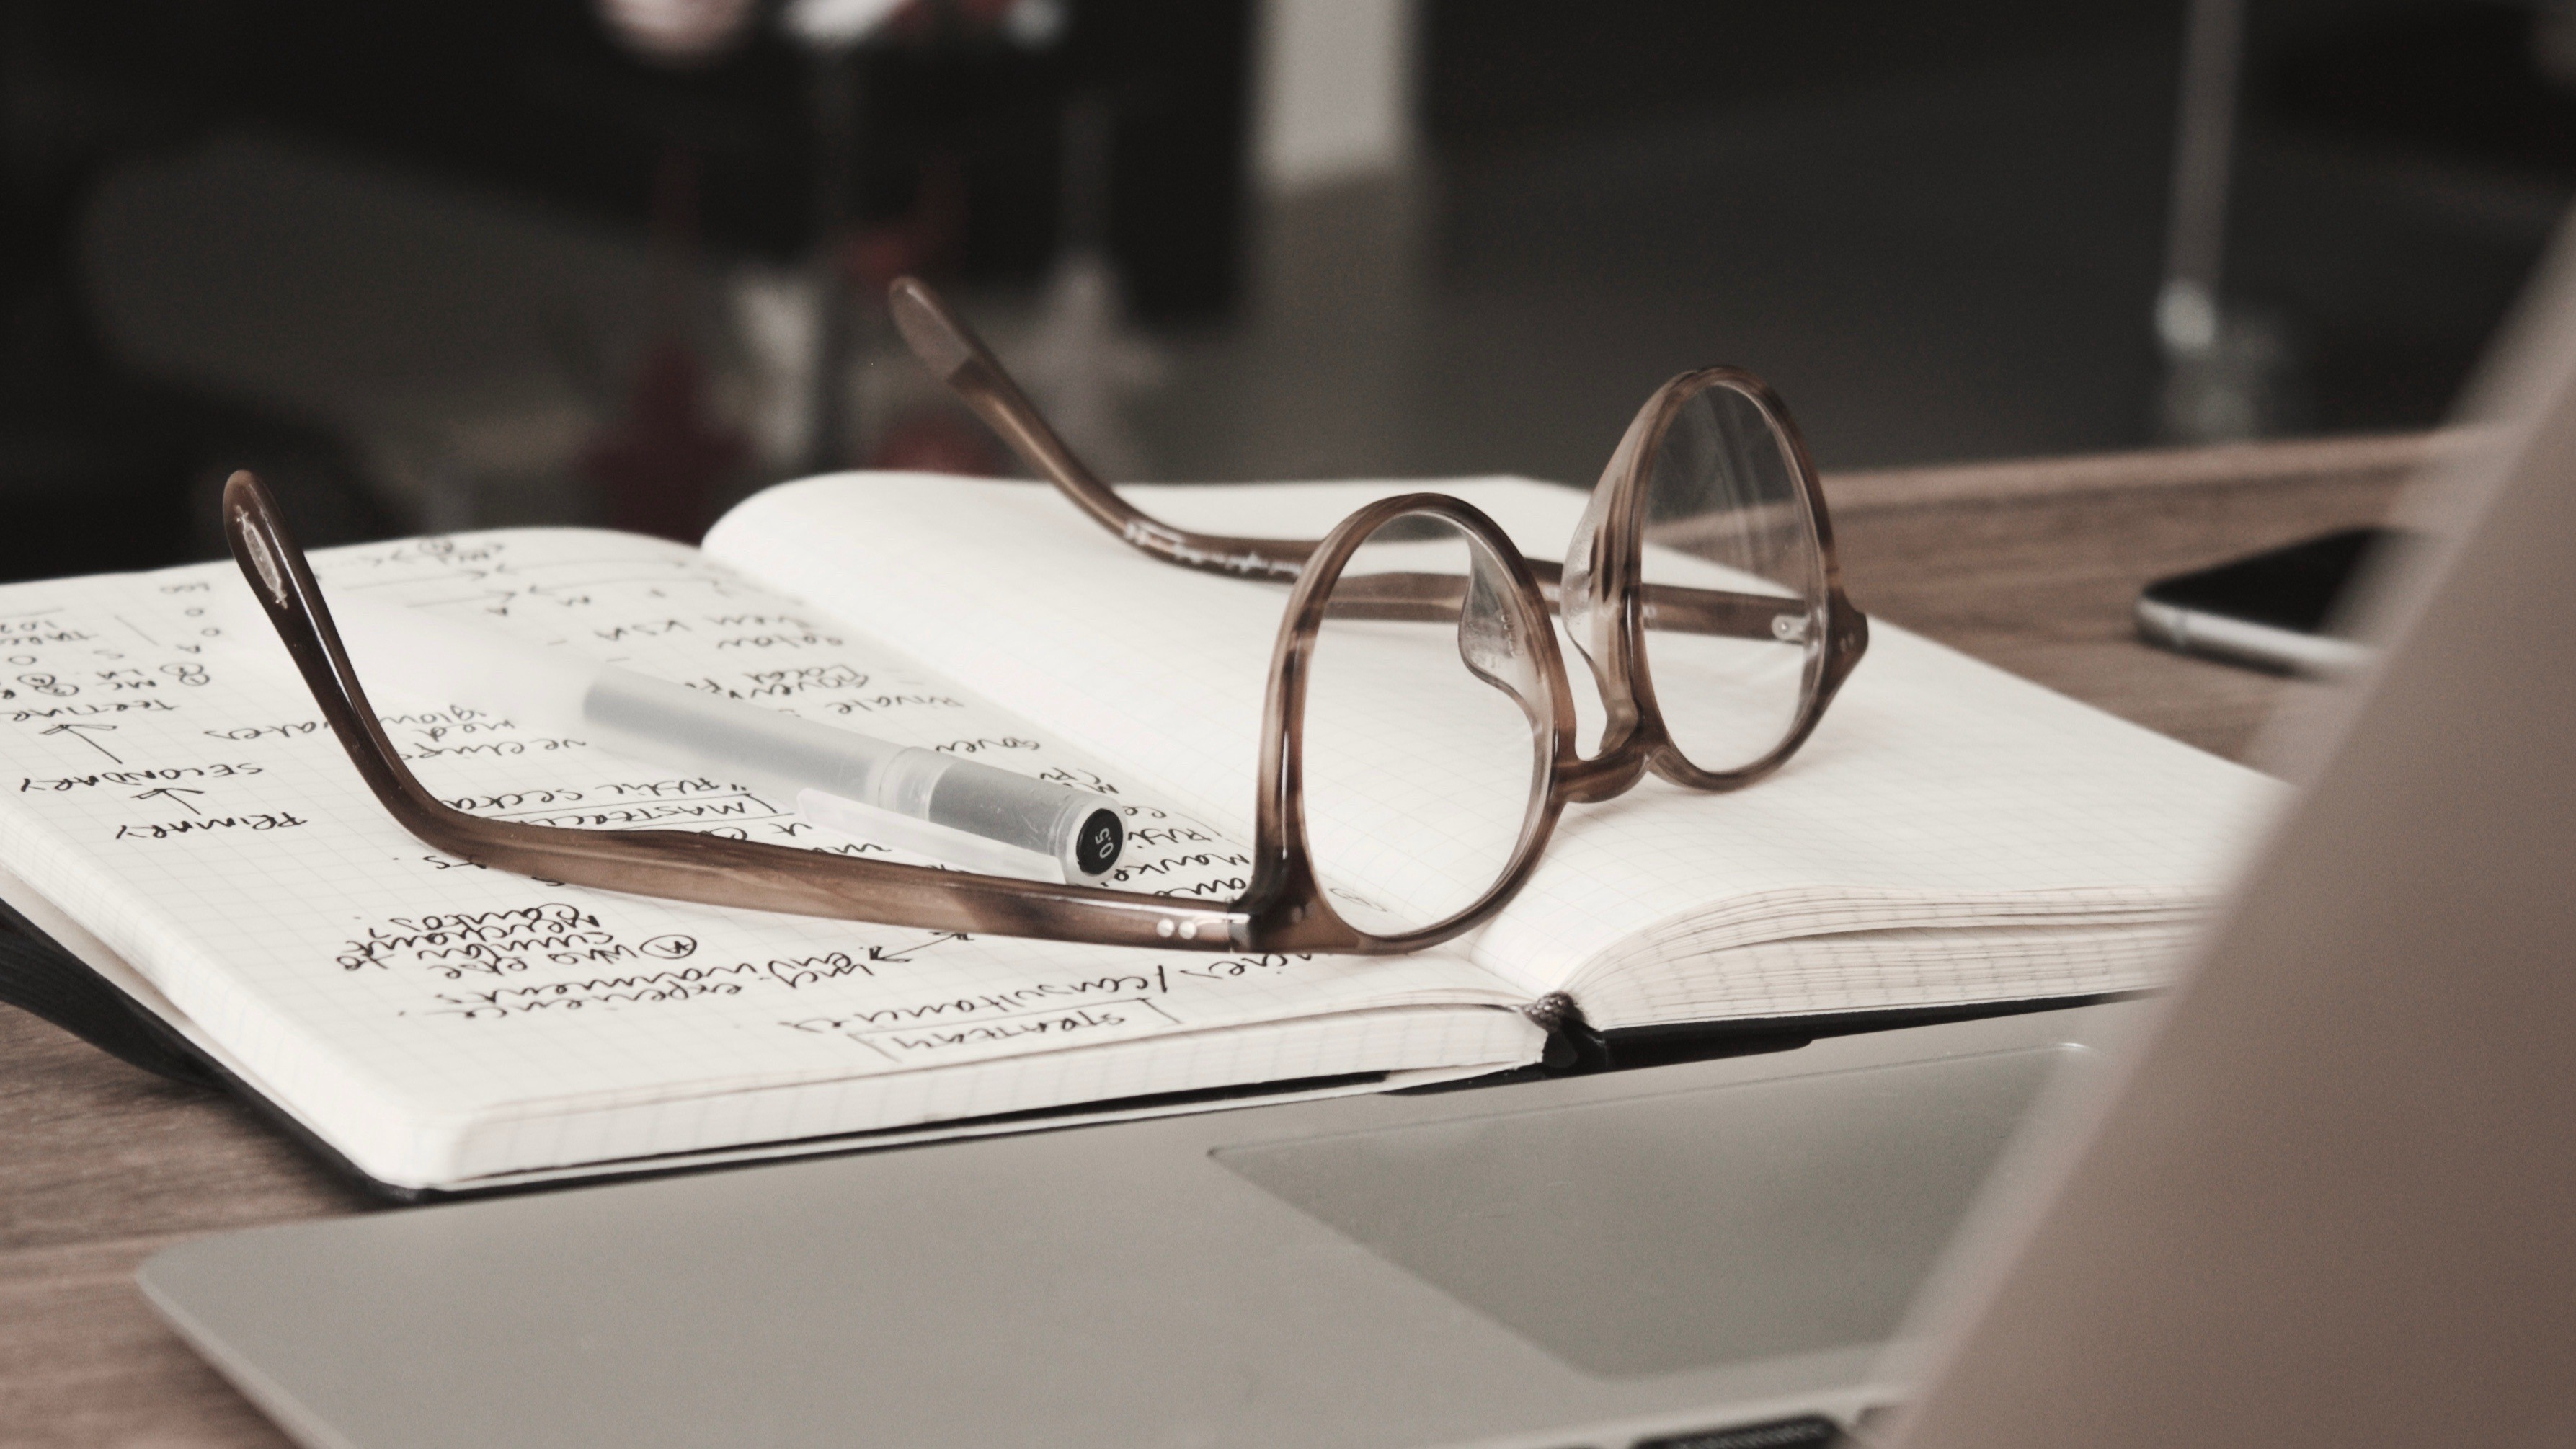 Photo of a small notebook with glasses and a pen rested on top of its open pages. There is an open laptop in front of it.